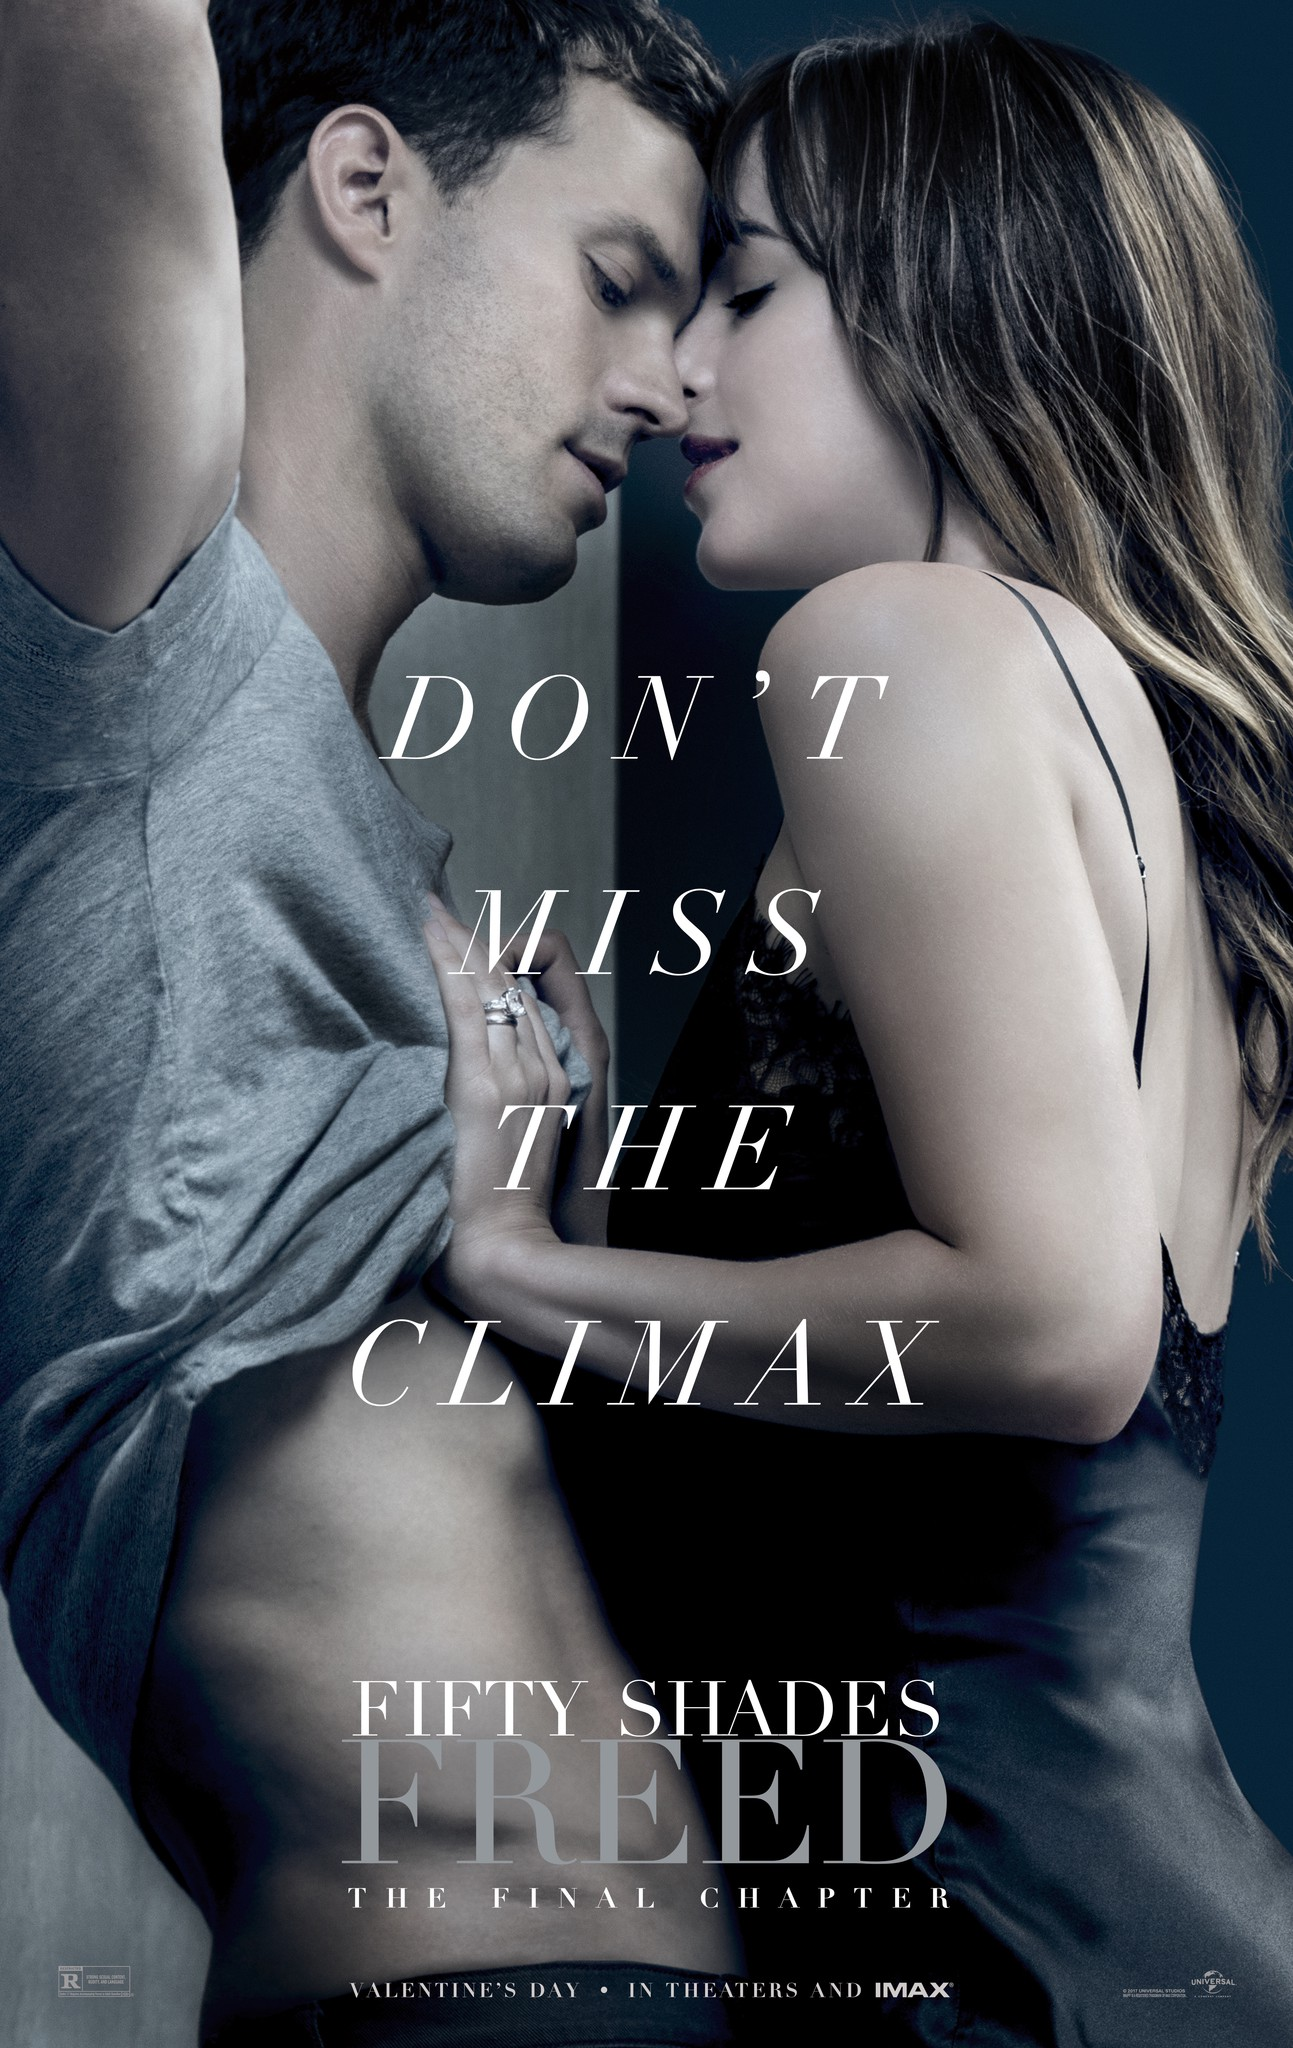 fifty shades of grey movie free download in tamil